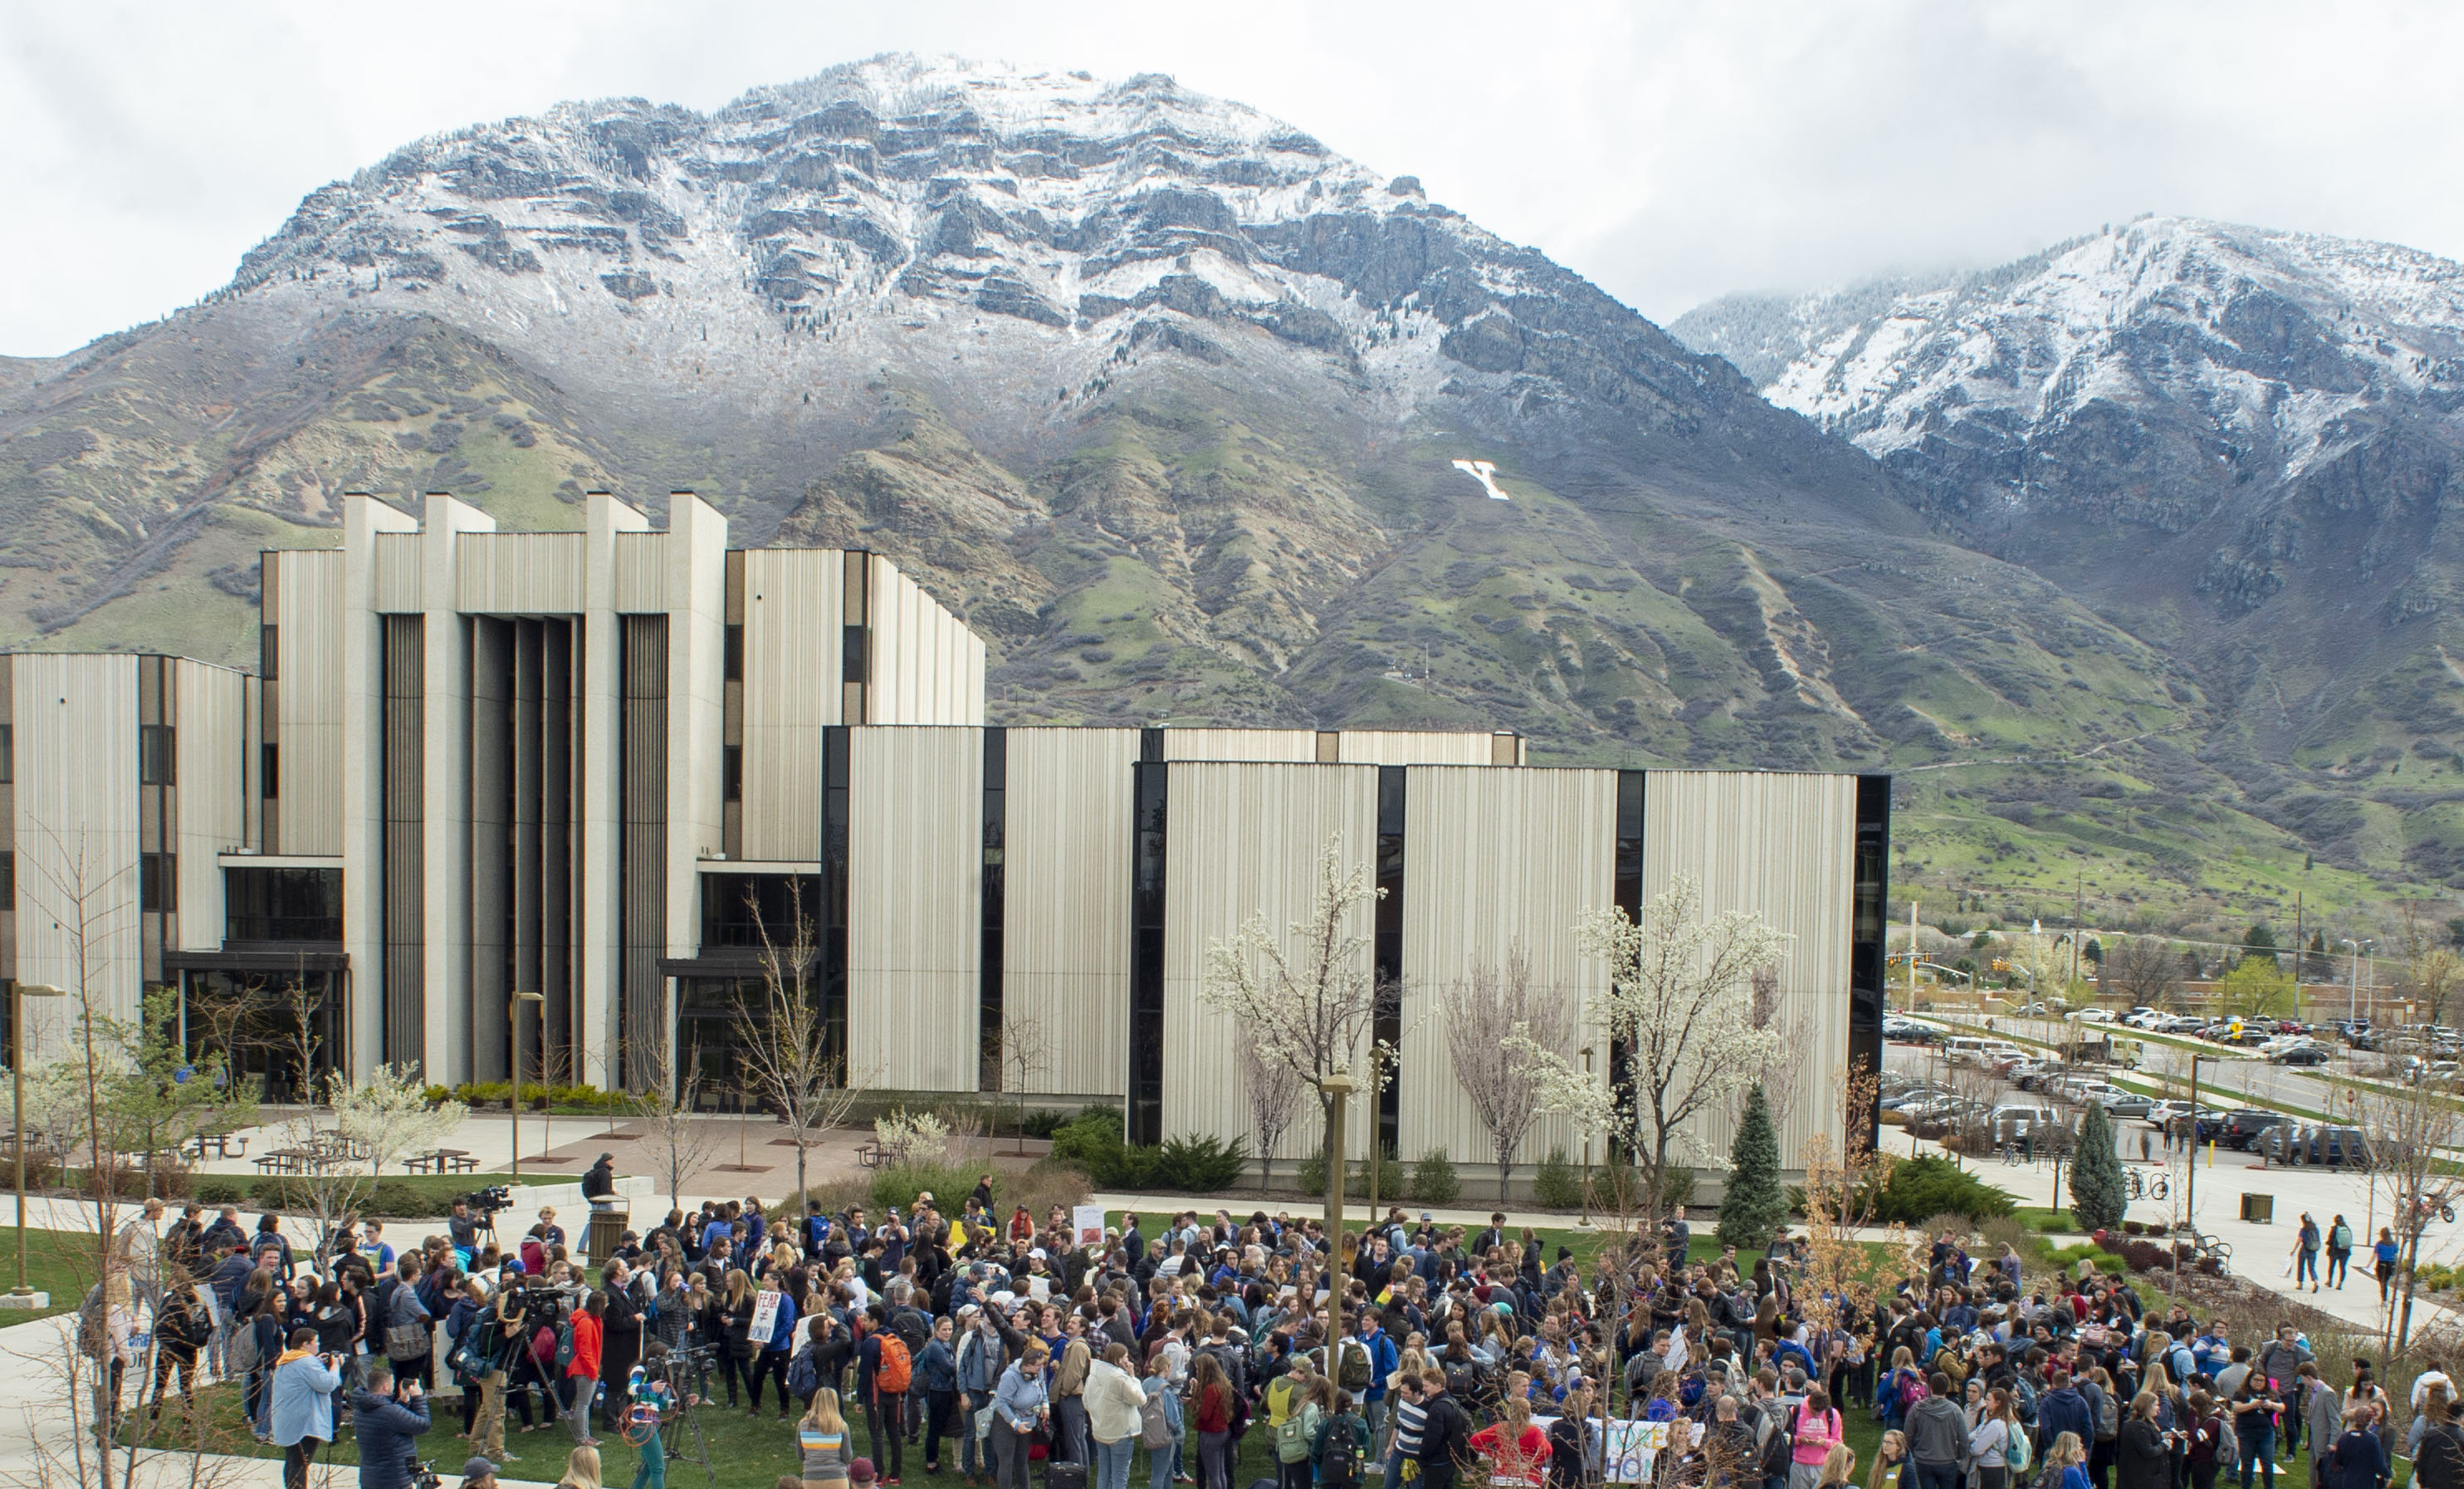 Some BYU alumni plan to withhold donations and skip sporting events until enforcement of the Honor Code changes